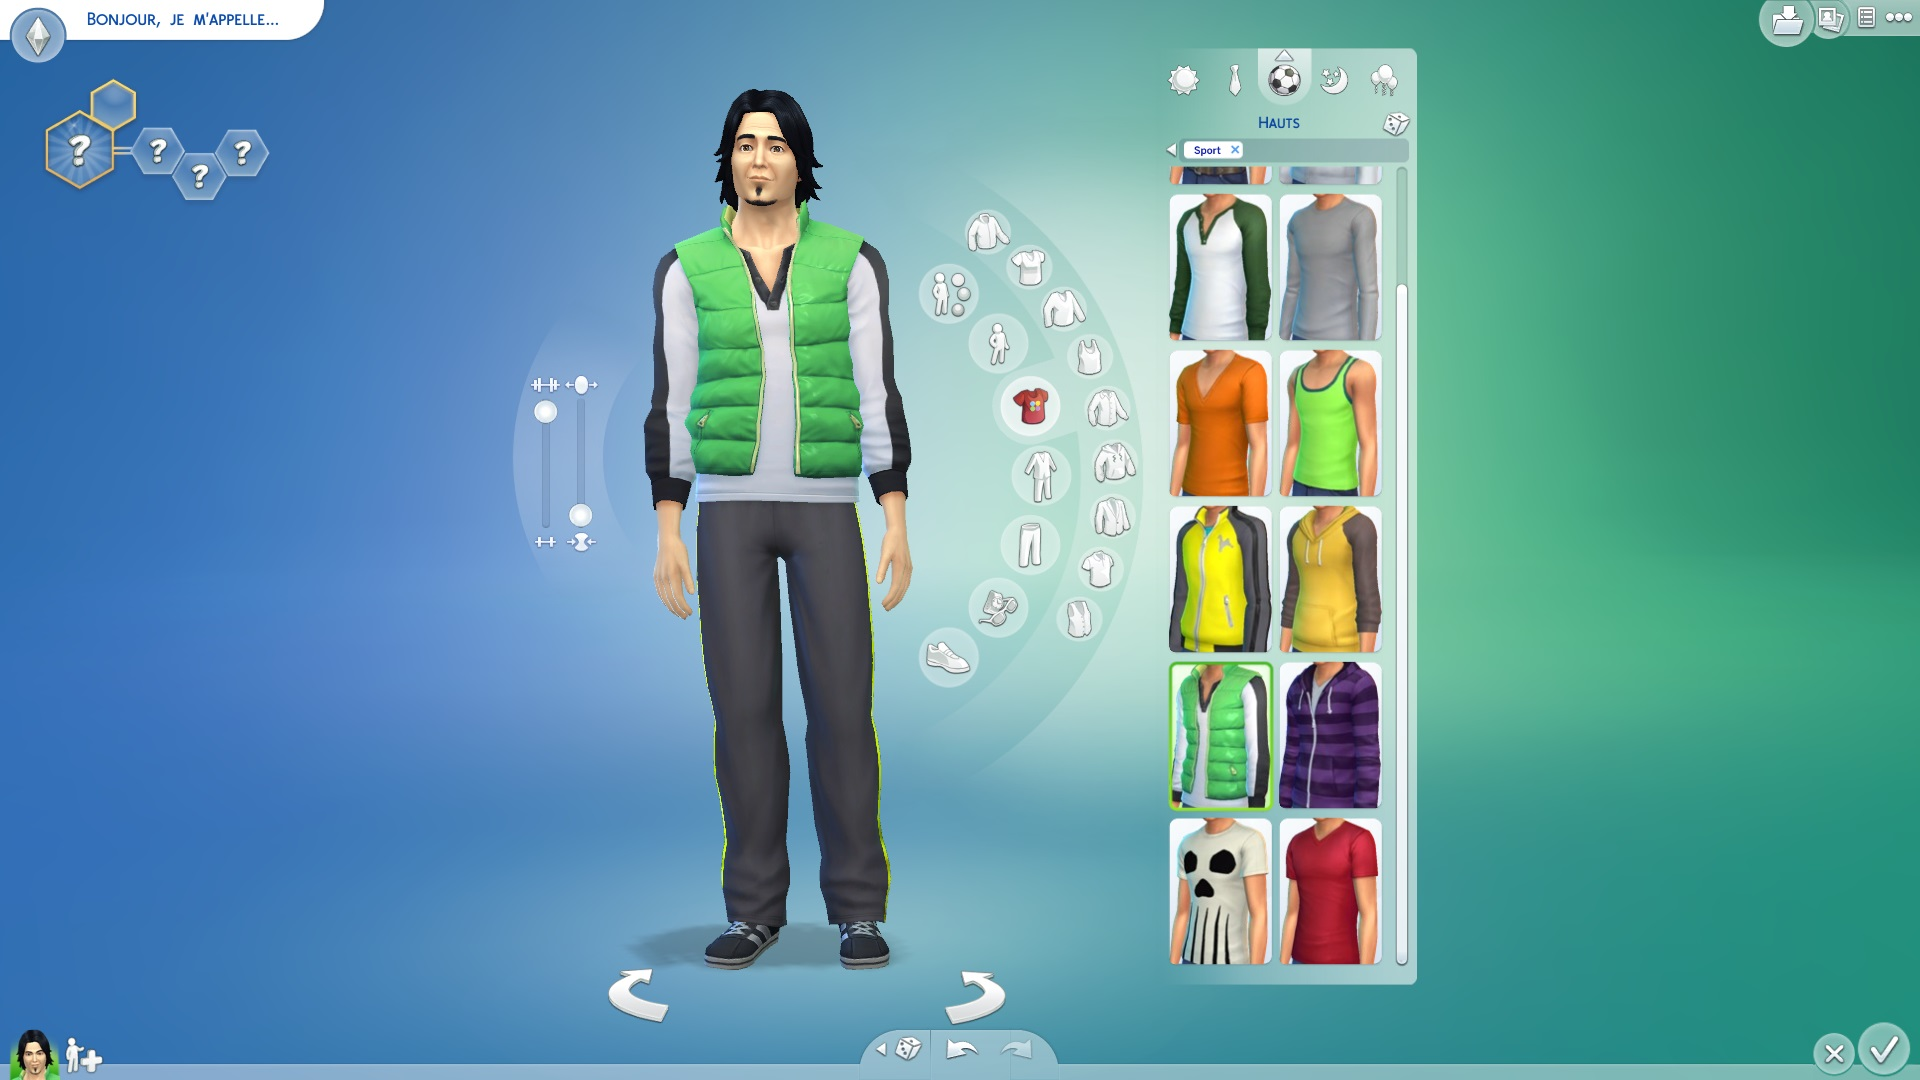 sims4 Geek4life.fr SCREENSHOT.jpg